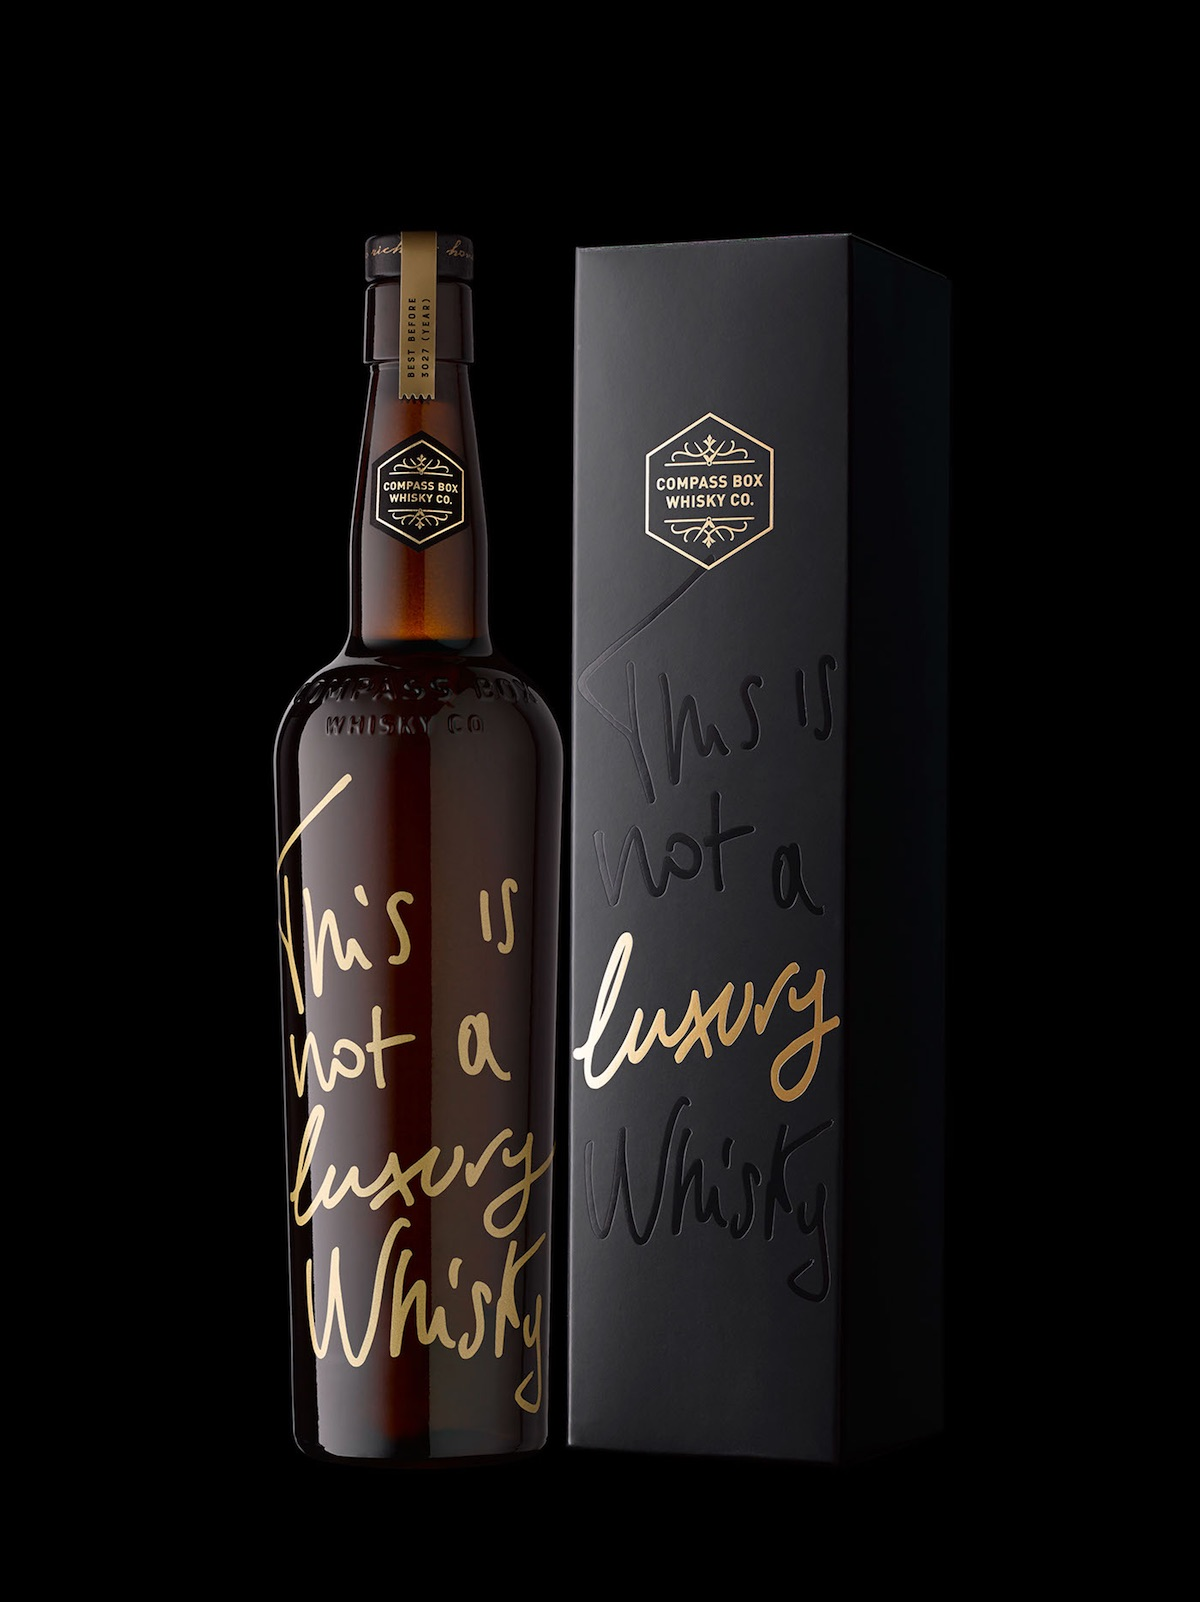 luxury-whisky-packaging-1-1